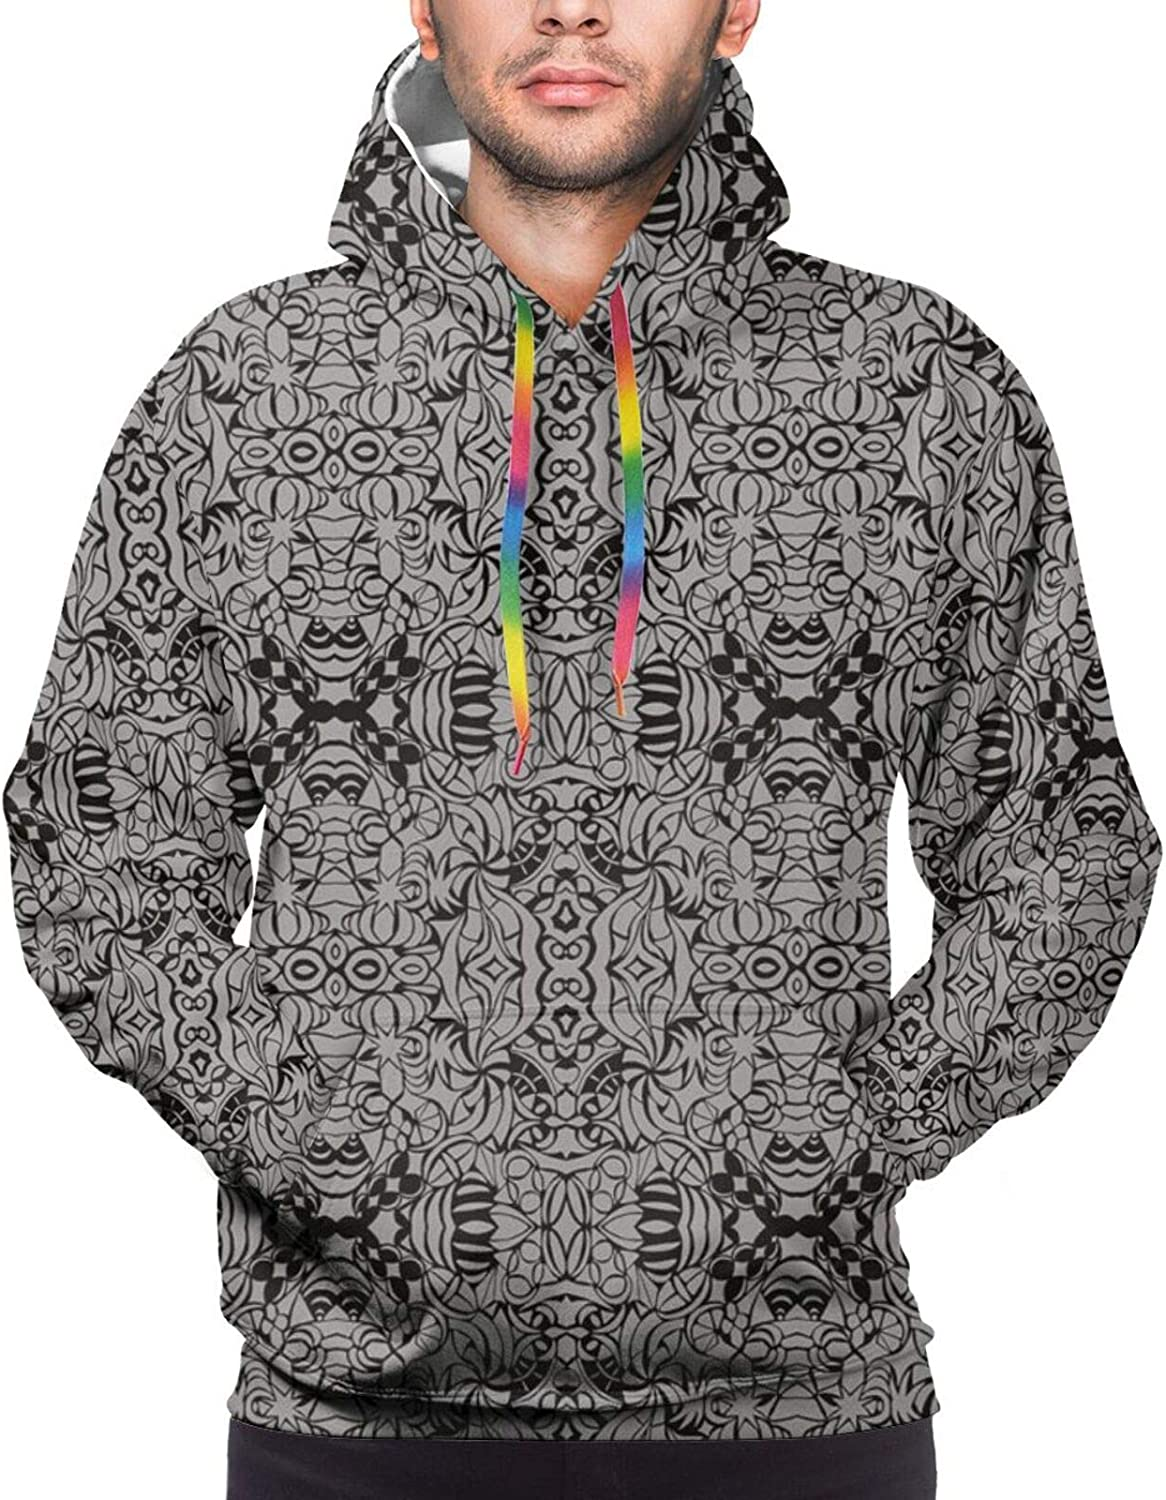 Men's Hoodies Sweatshirts,Abstract Animal Ornament Pattern in Tribal Style for Tattoo and Culture Design